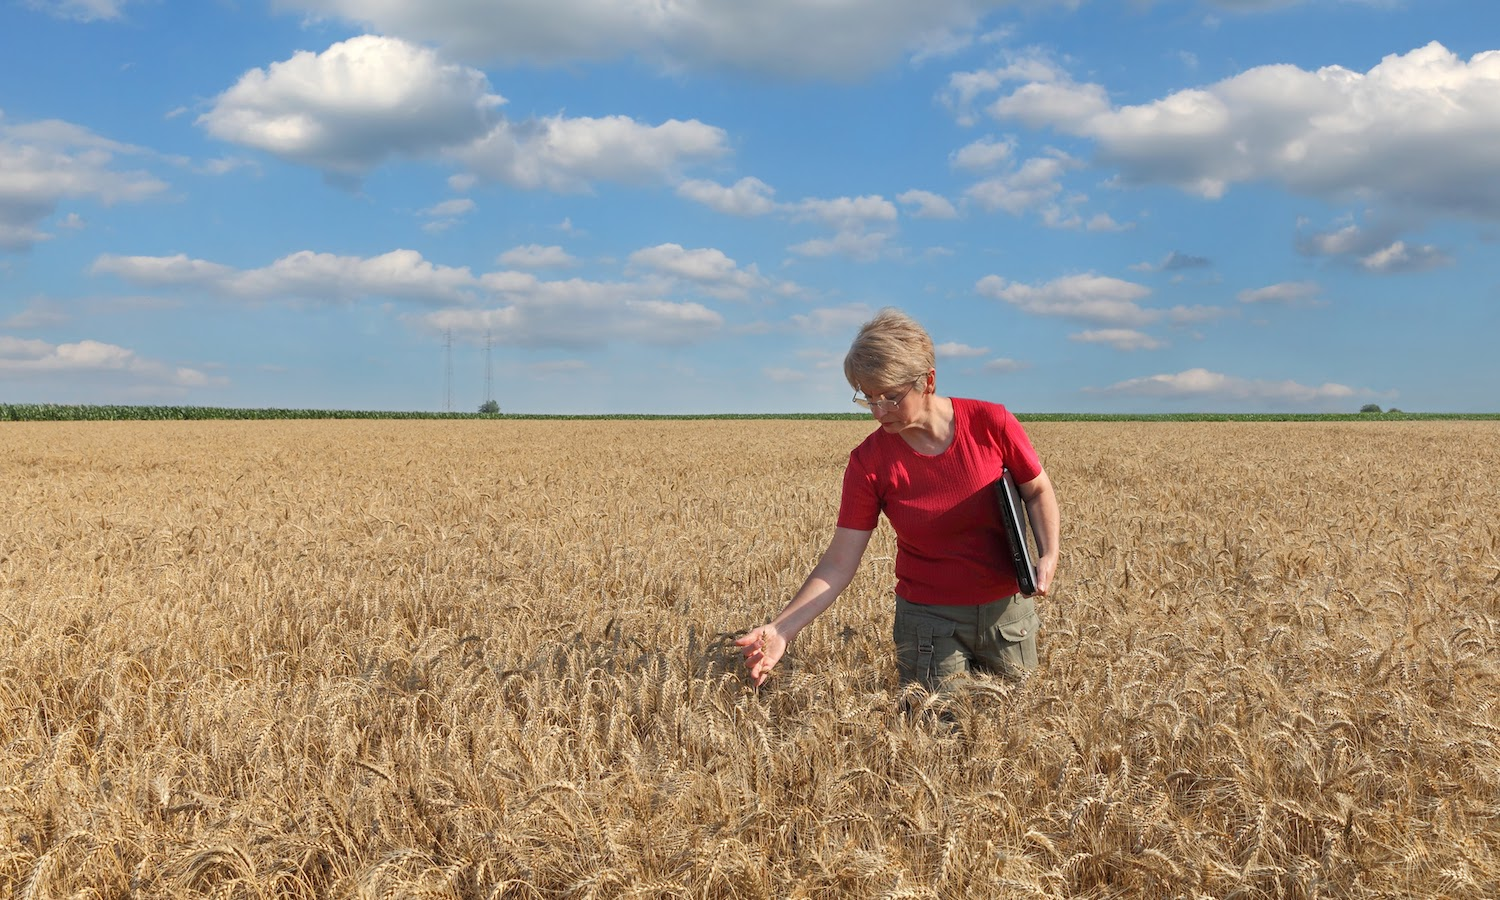 Although women face multiple barriers to entry in the AgTech sector, many are emerging with innovative technologies that are changing how we grow and consume food.